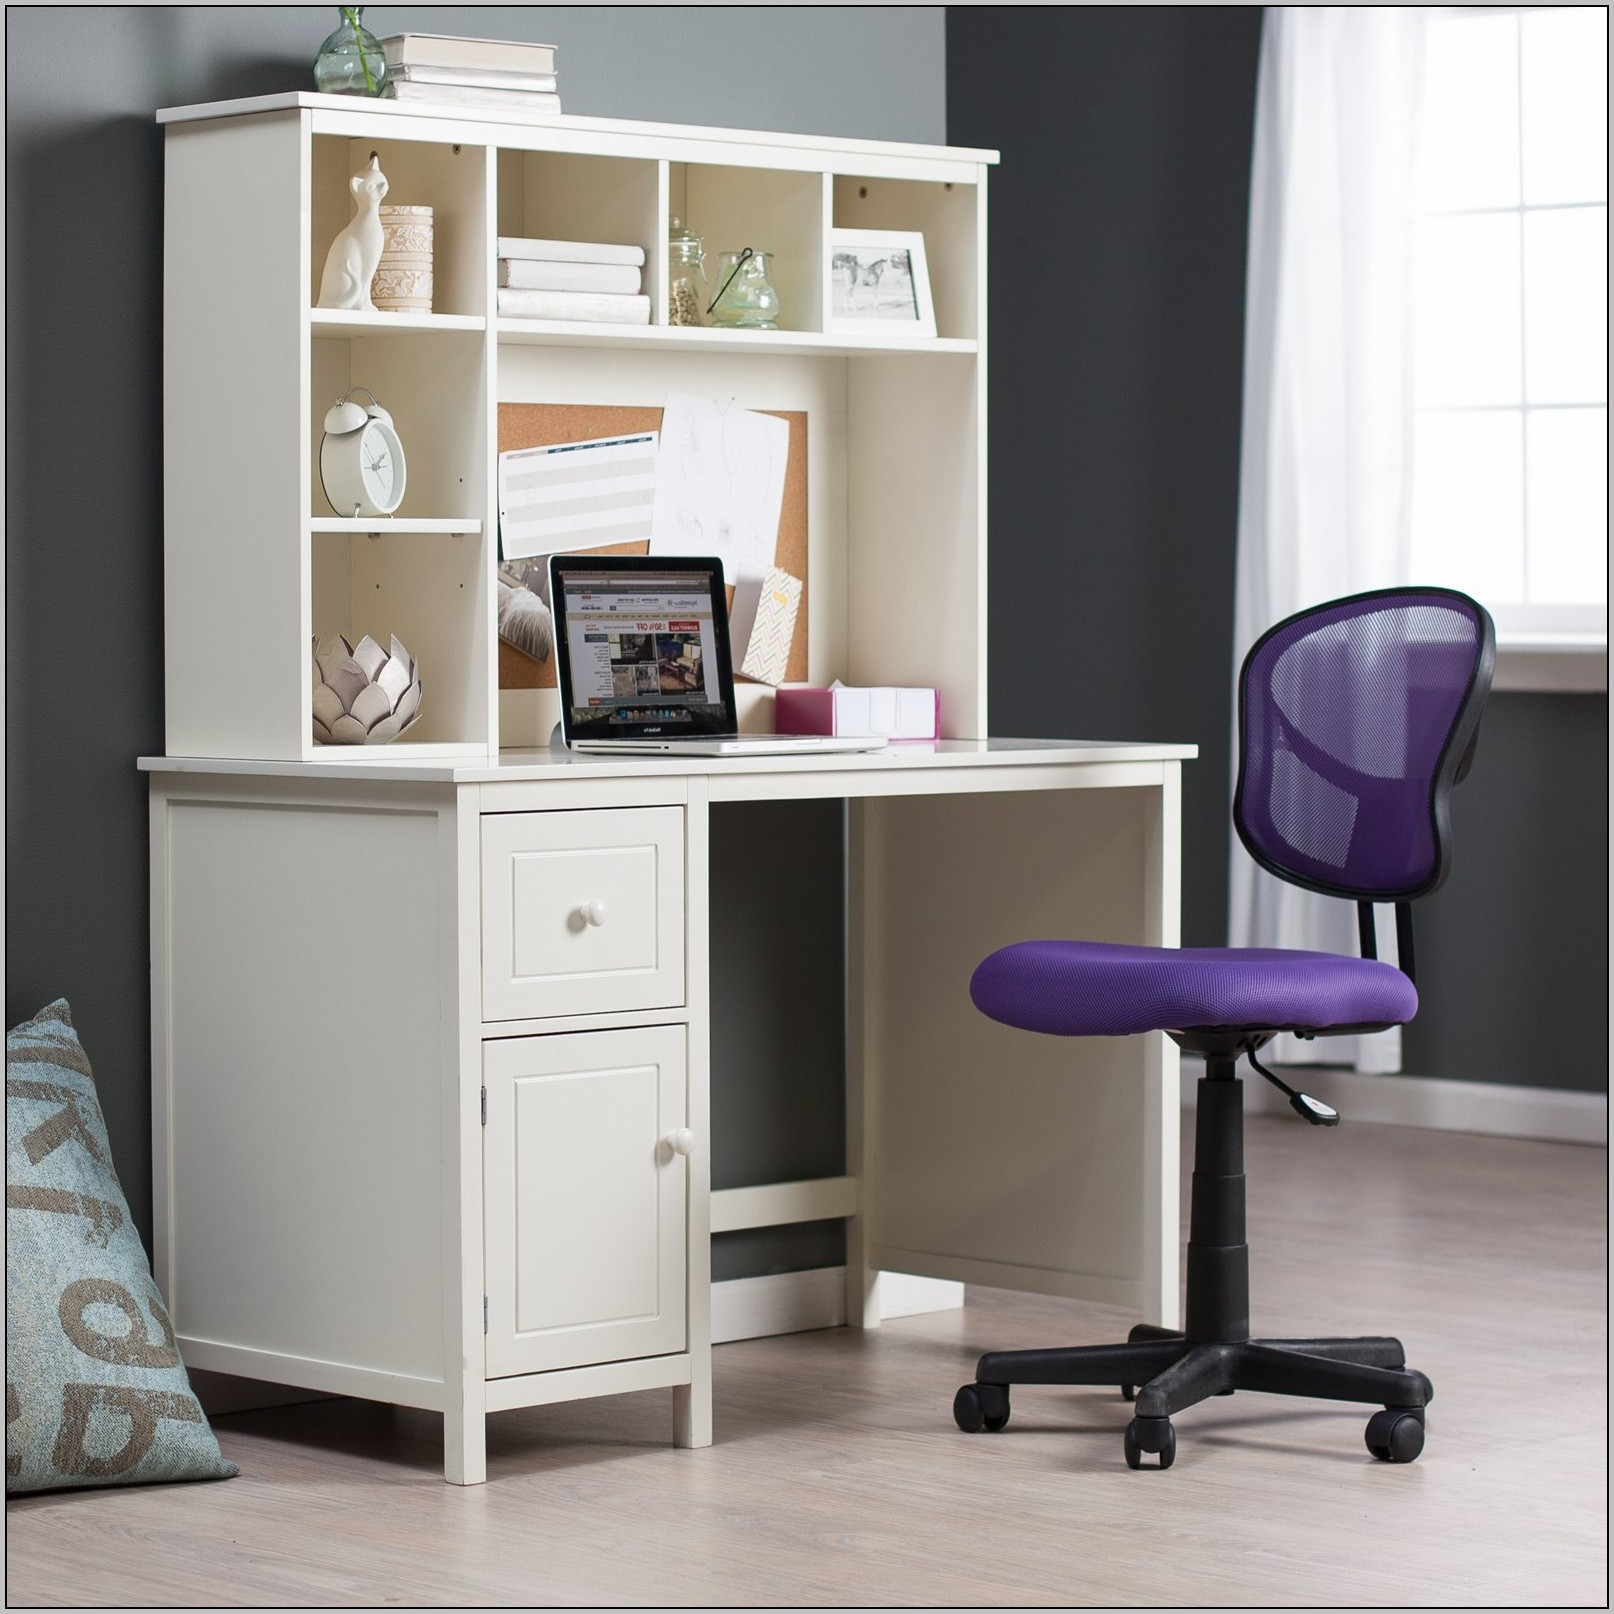 l shaped bench kitchen table base cabinet small student desks home download page – design ideas ...